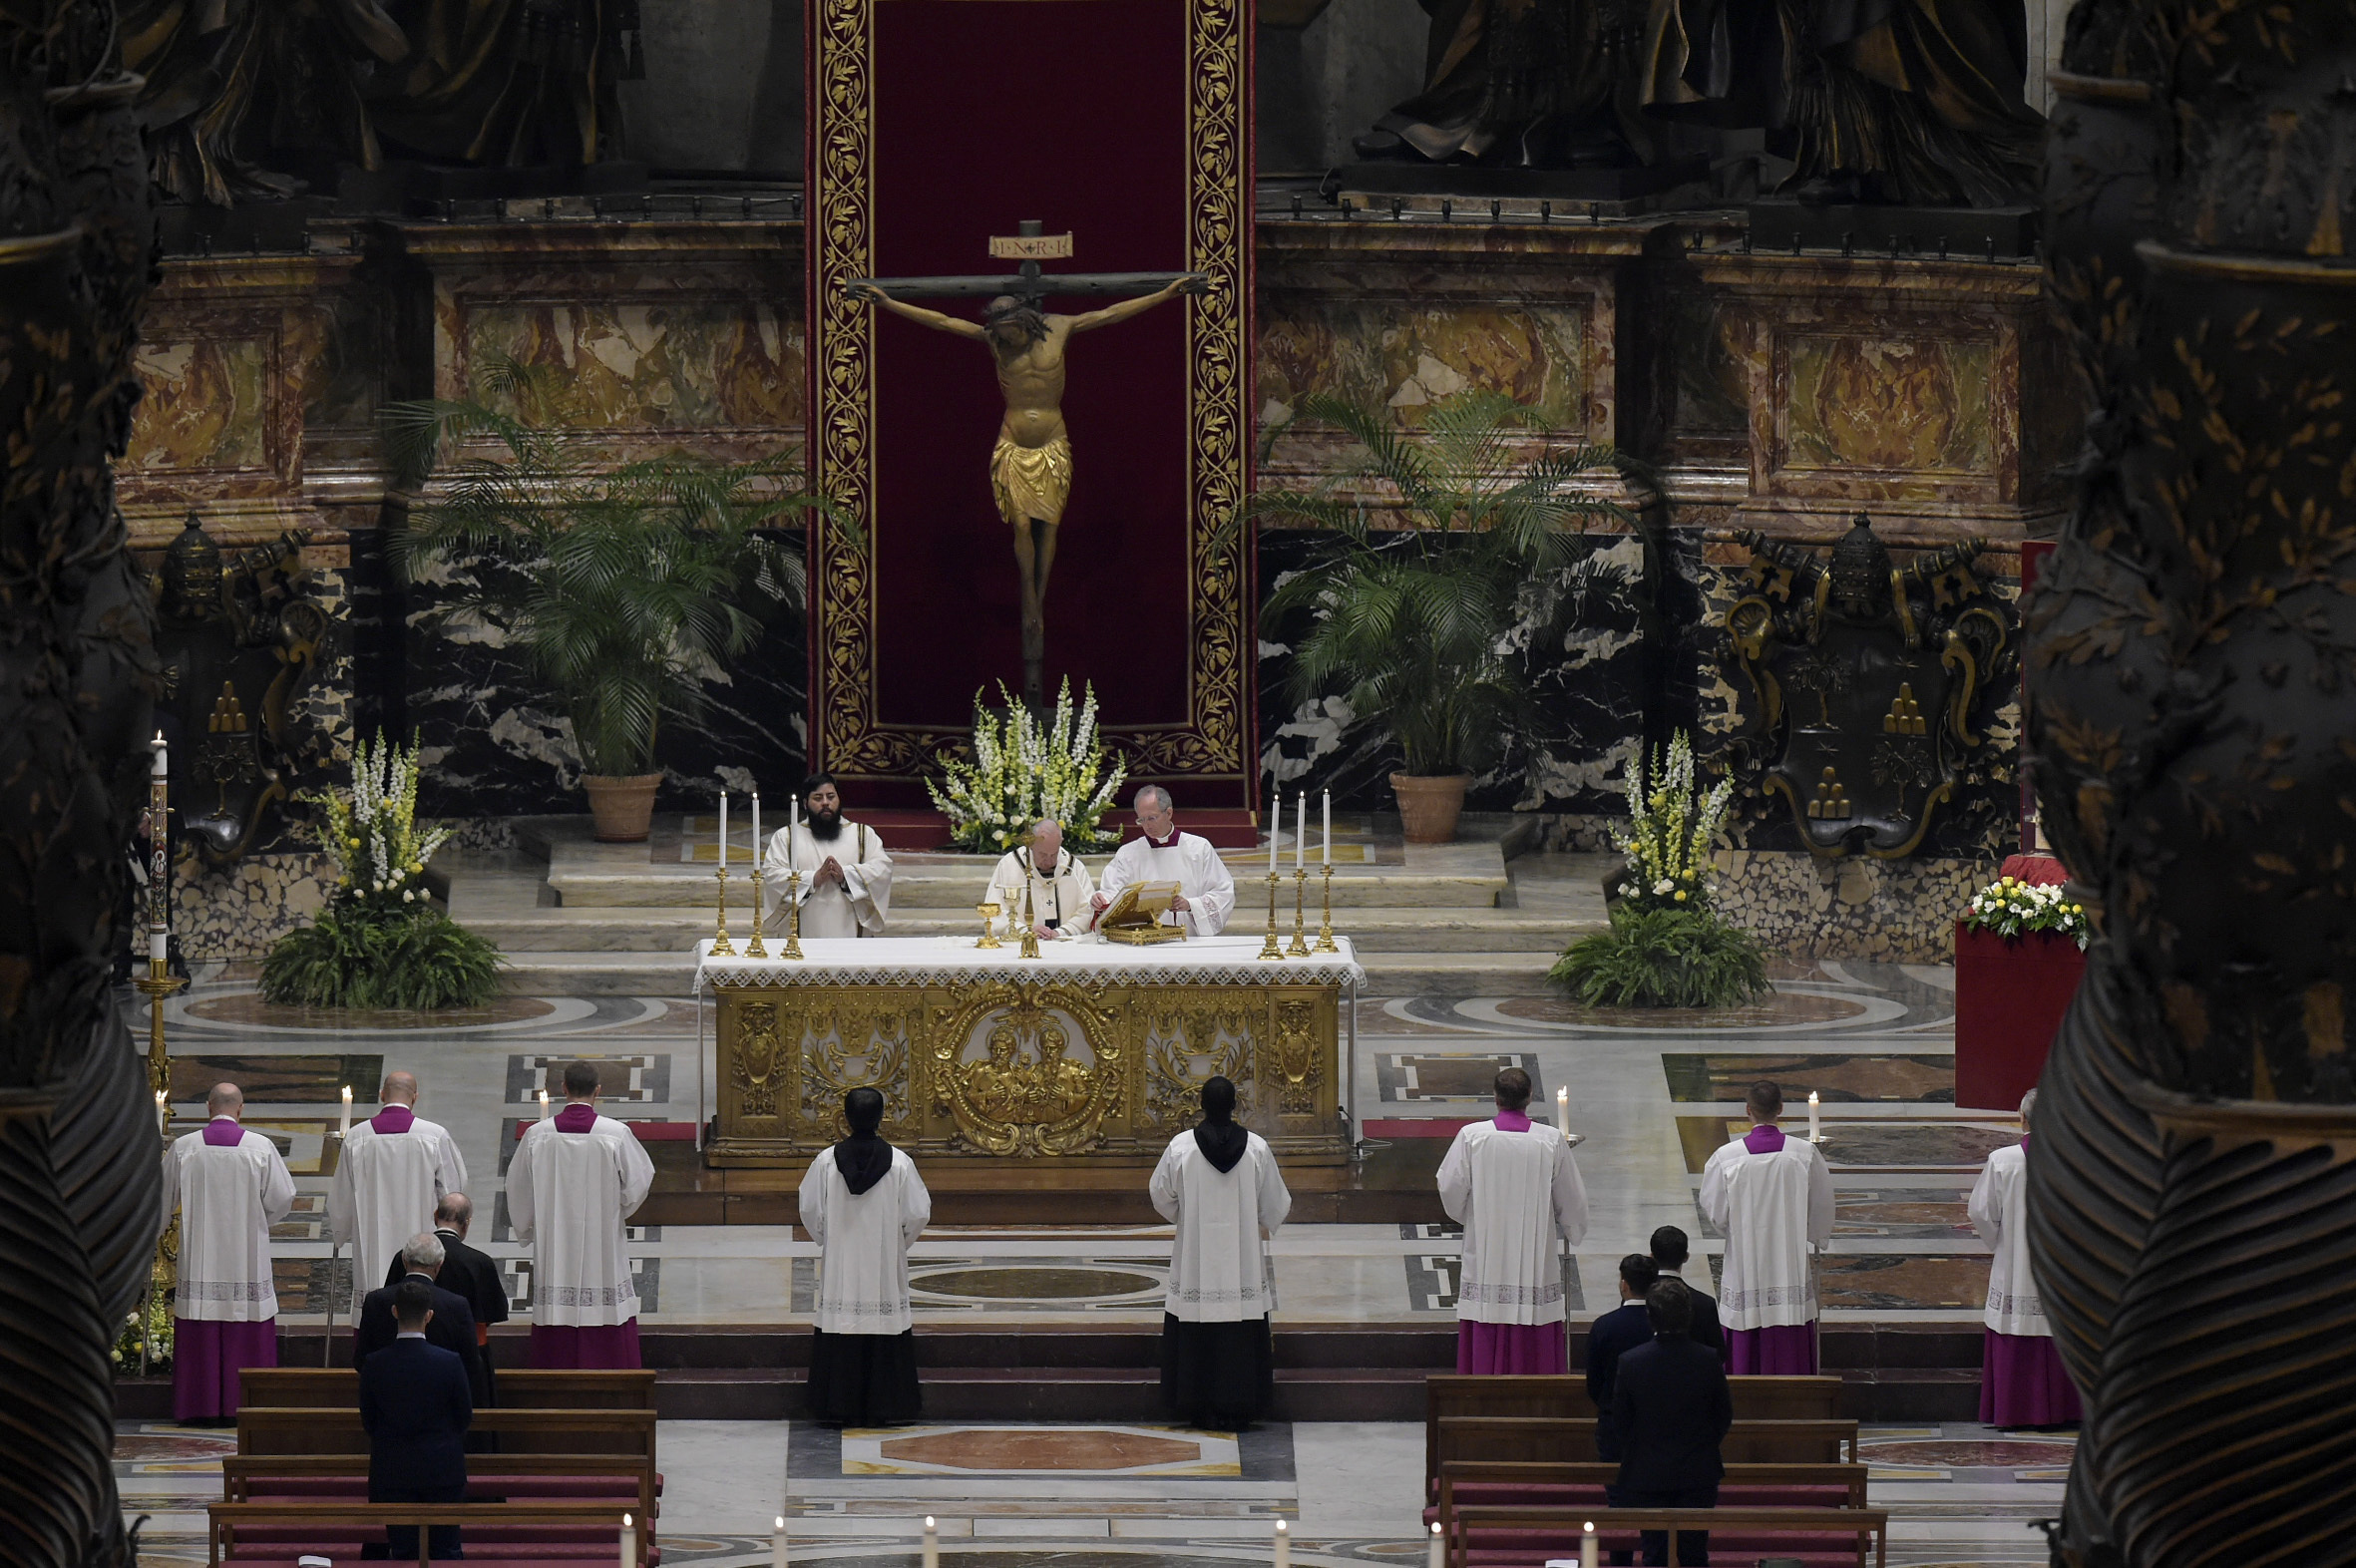 Pope Francis presides over an Easter vigil in St. Peter's Basilica in the Vatican on April 11.